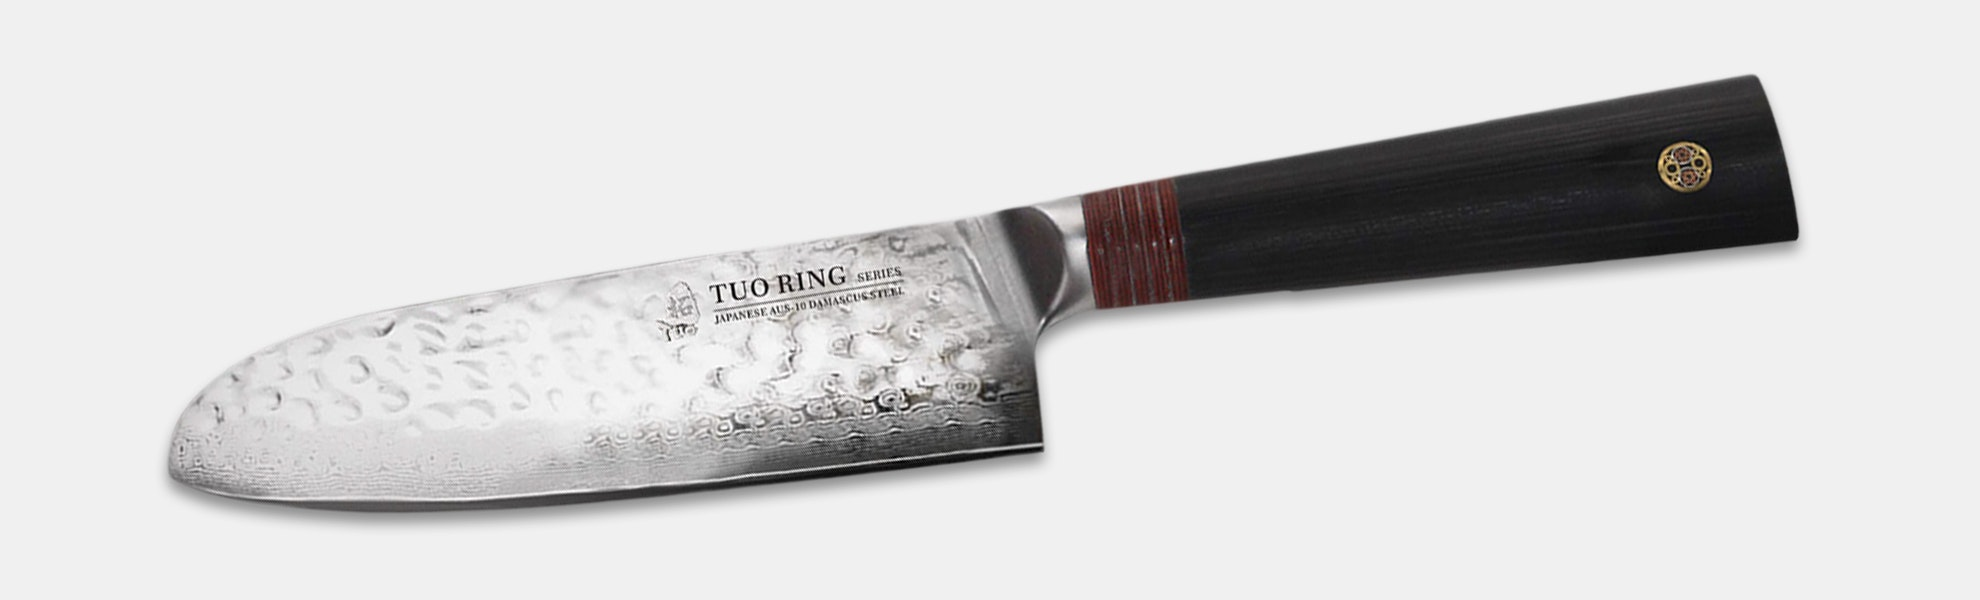 Tuo Cutlery Ring-H Damascus Culinary Knives